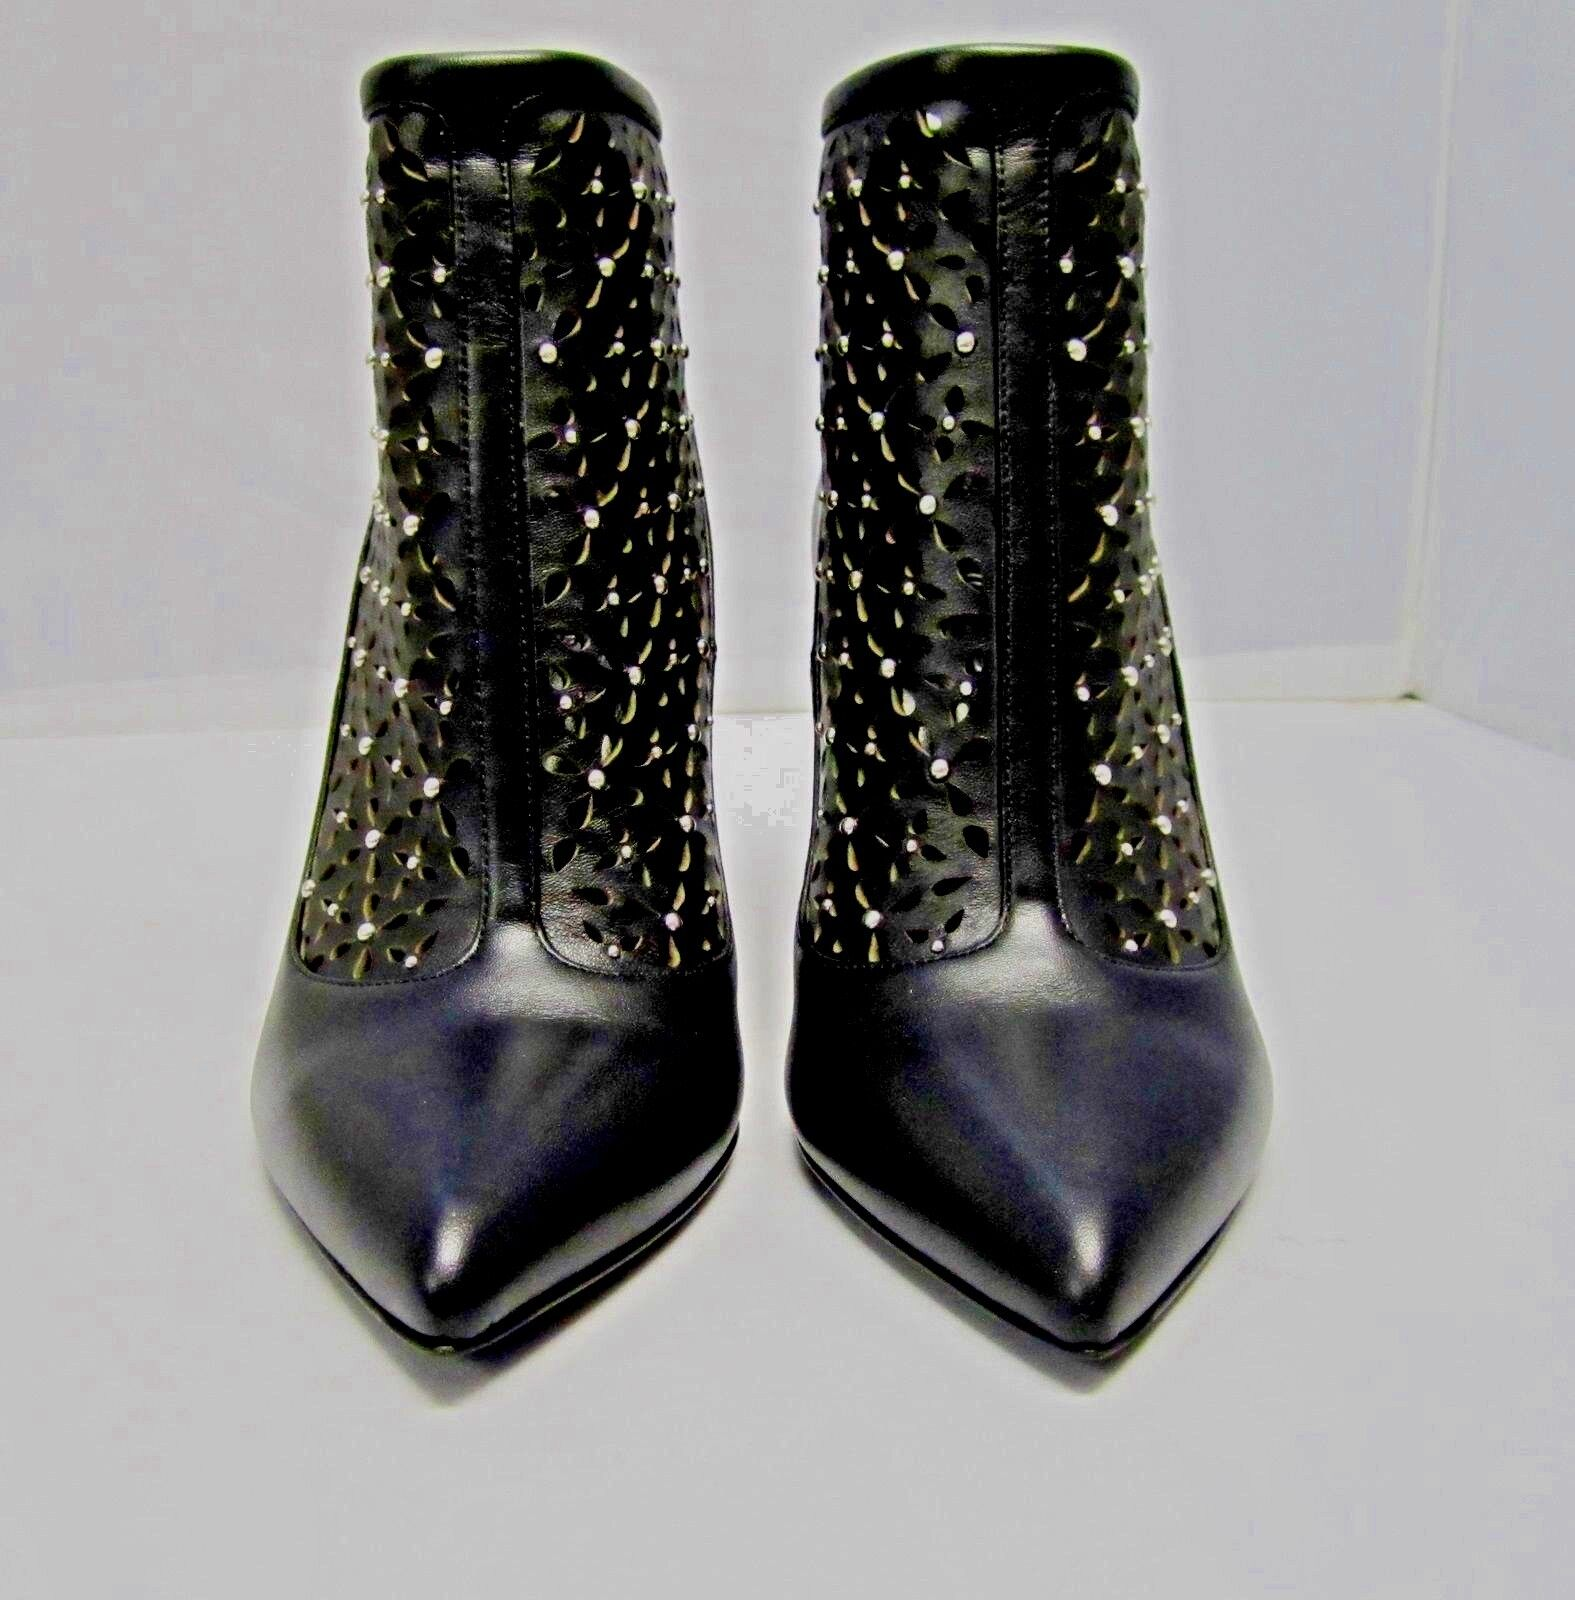 NWB ALEXANDER MCQUEEN ANKLE BOOTS BOOTS BOOTS LASER CUT STUDDED LEATHER BLACK 7 M BOOTIES ecf97e